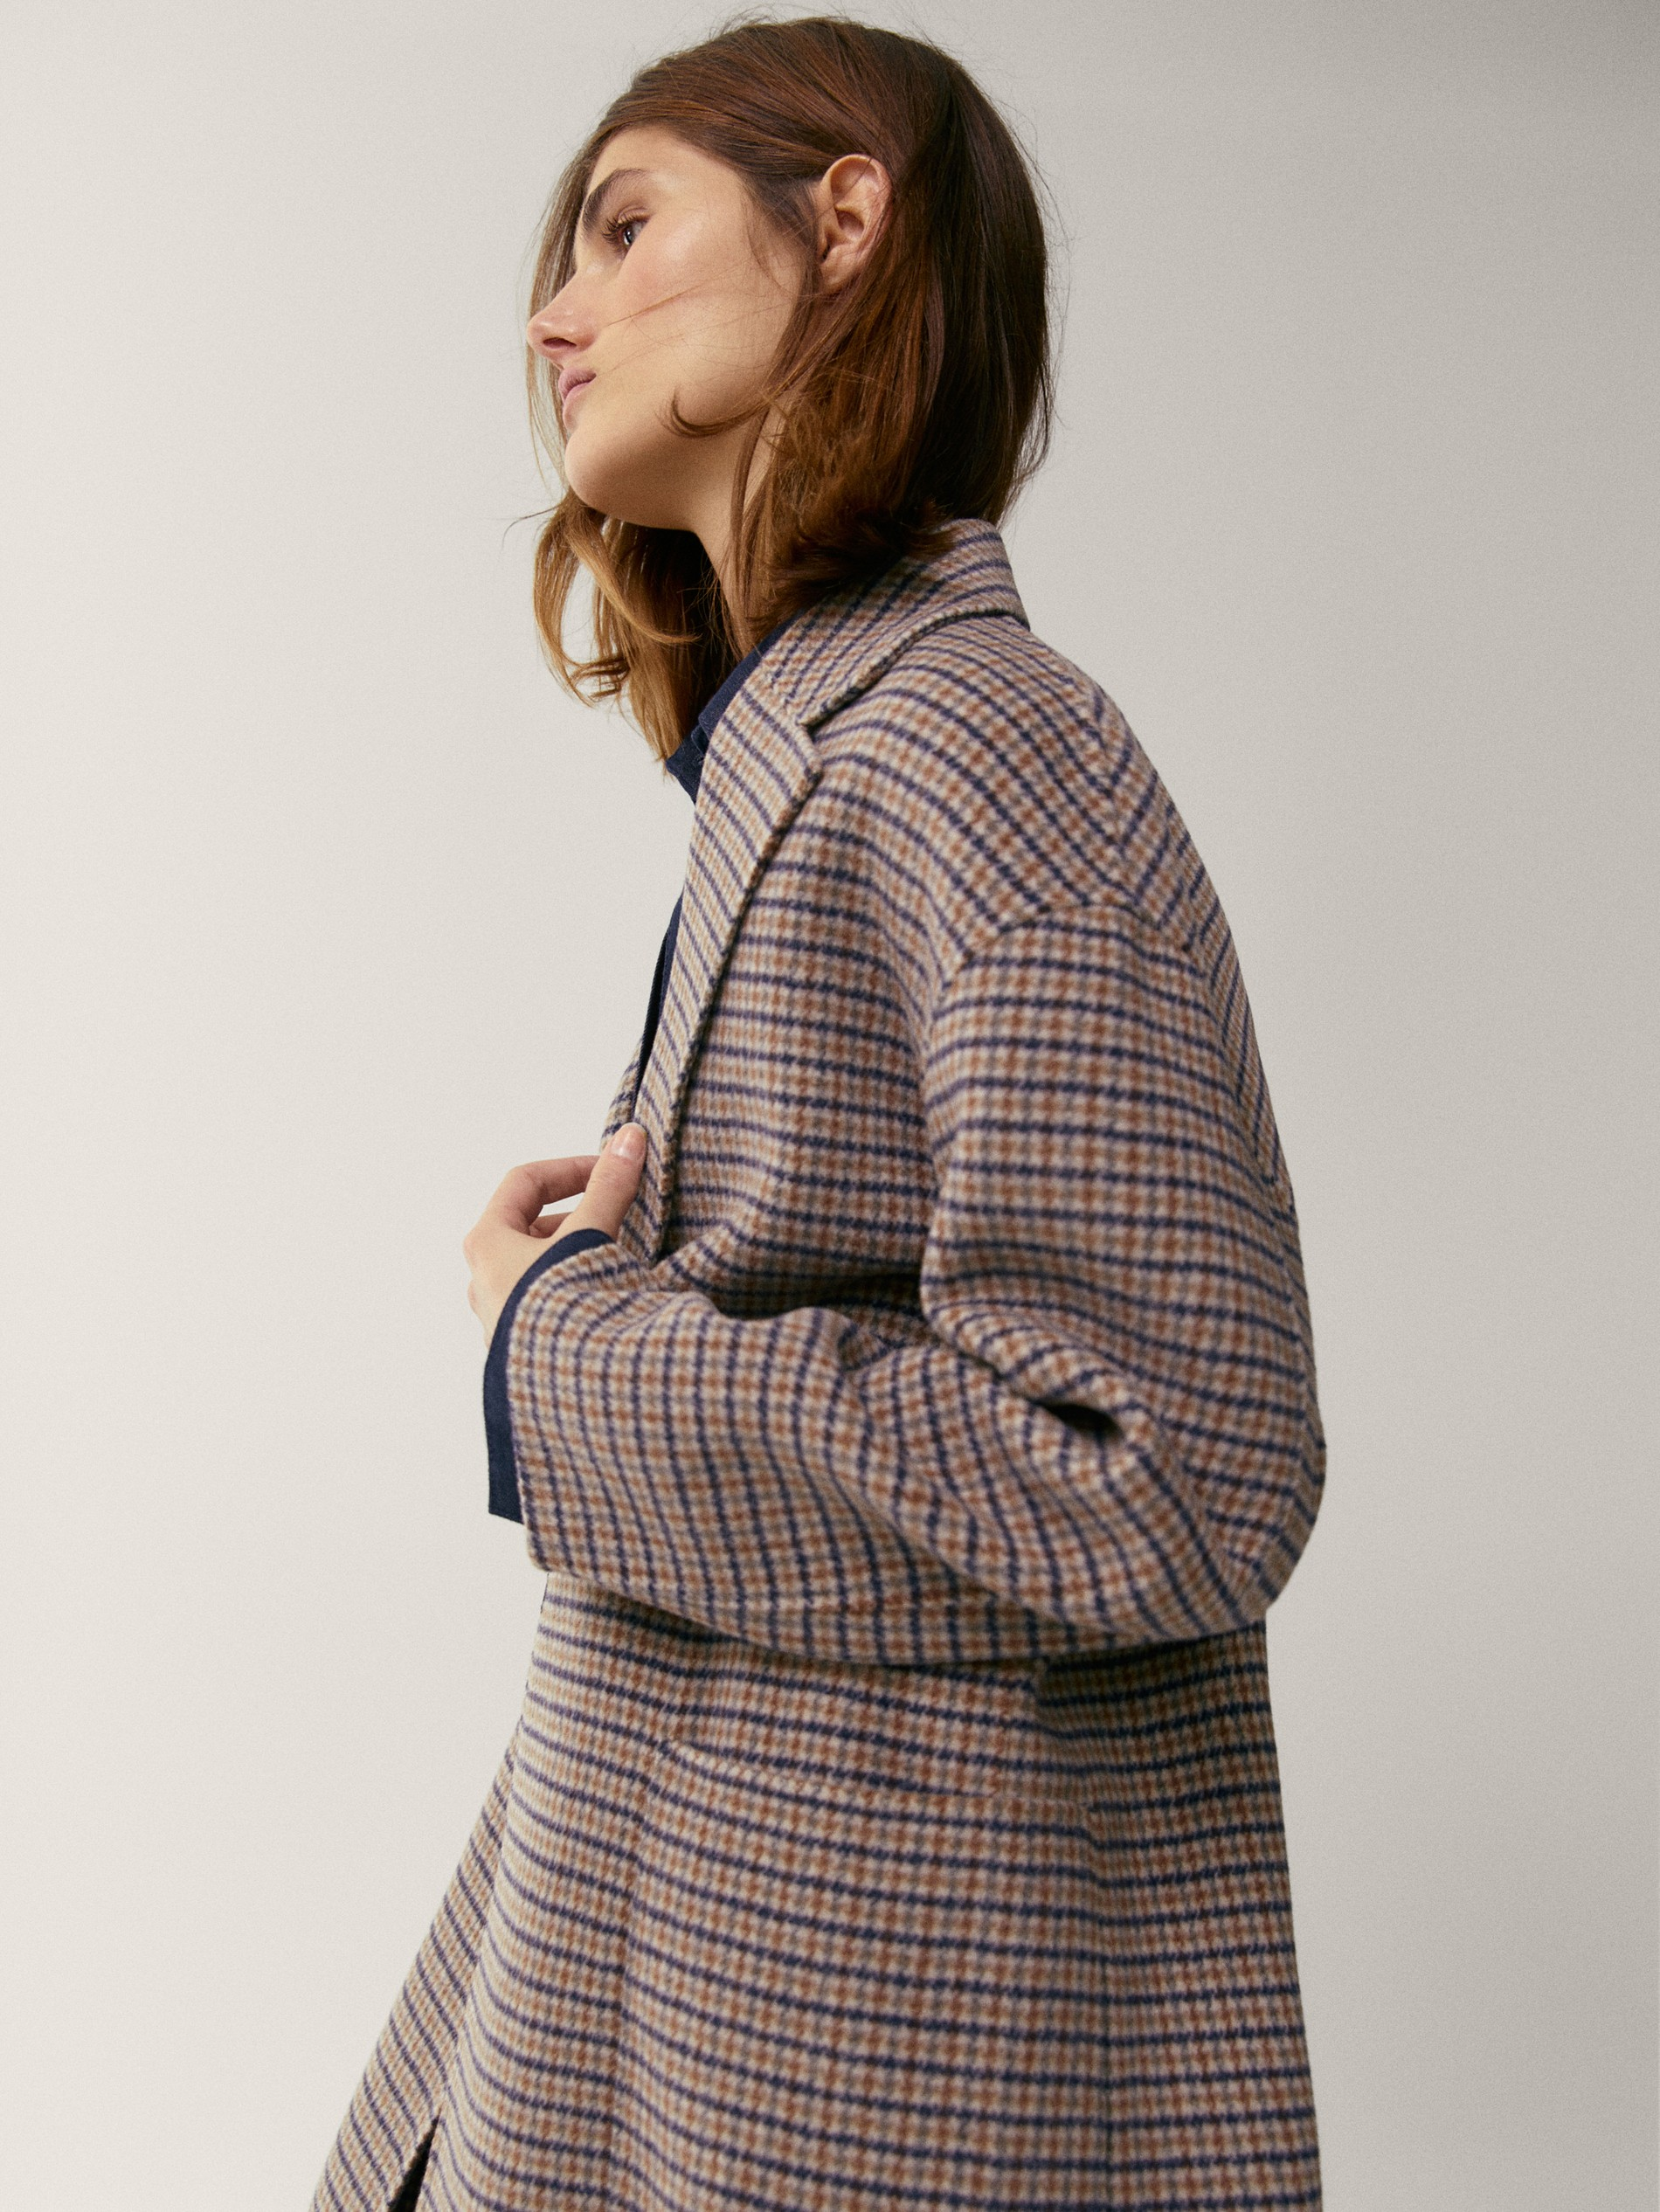 Handcrafted checked wool coat by Massimo Dutti, available on massimodutti.com for $349 Kate Middleton Outerwear Exact Product